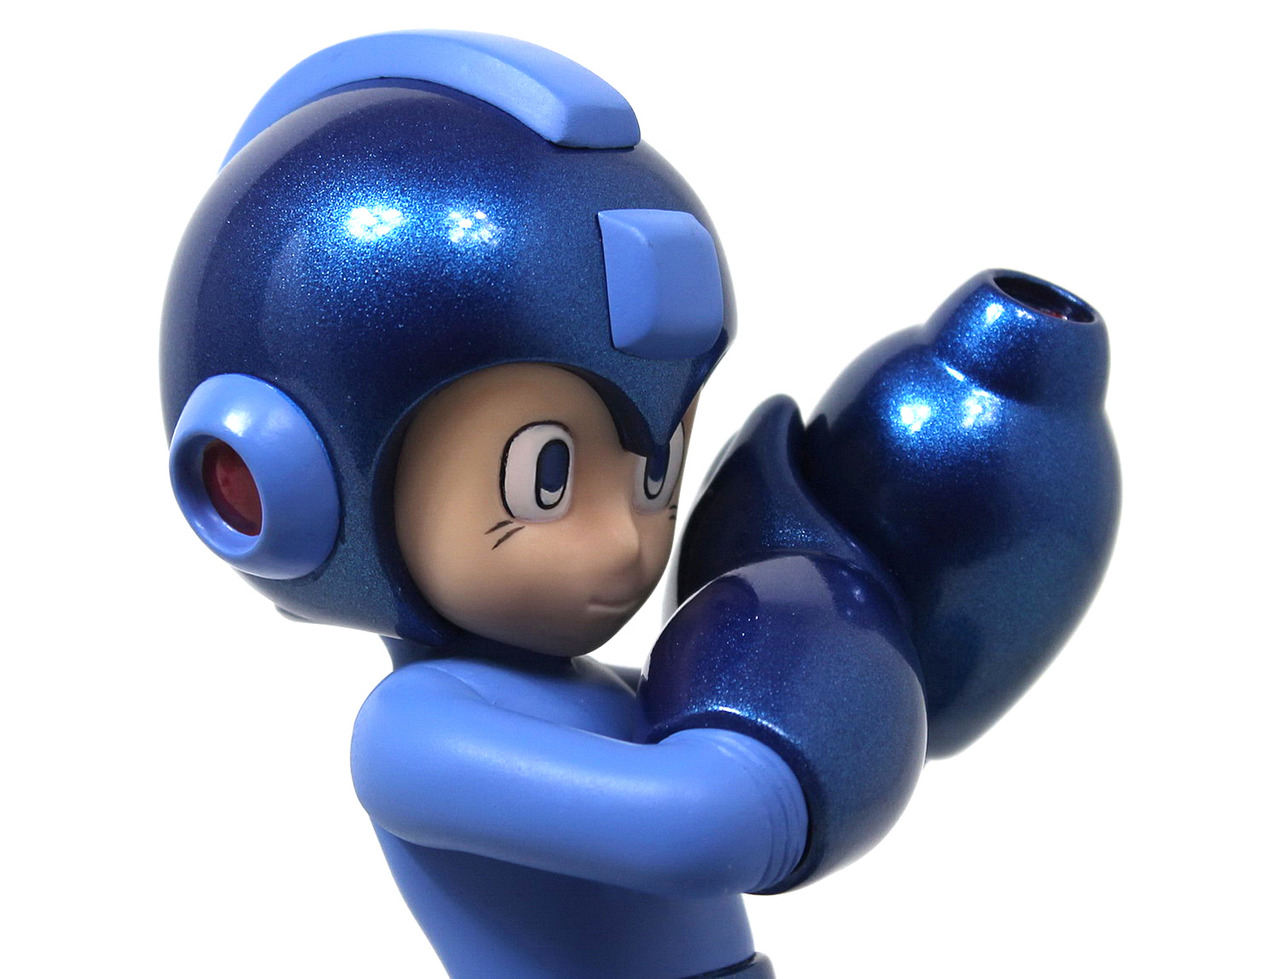 25th anniversary Mega Man statue 10-04-13 001